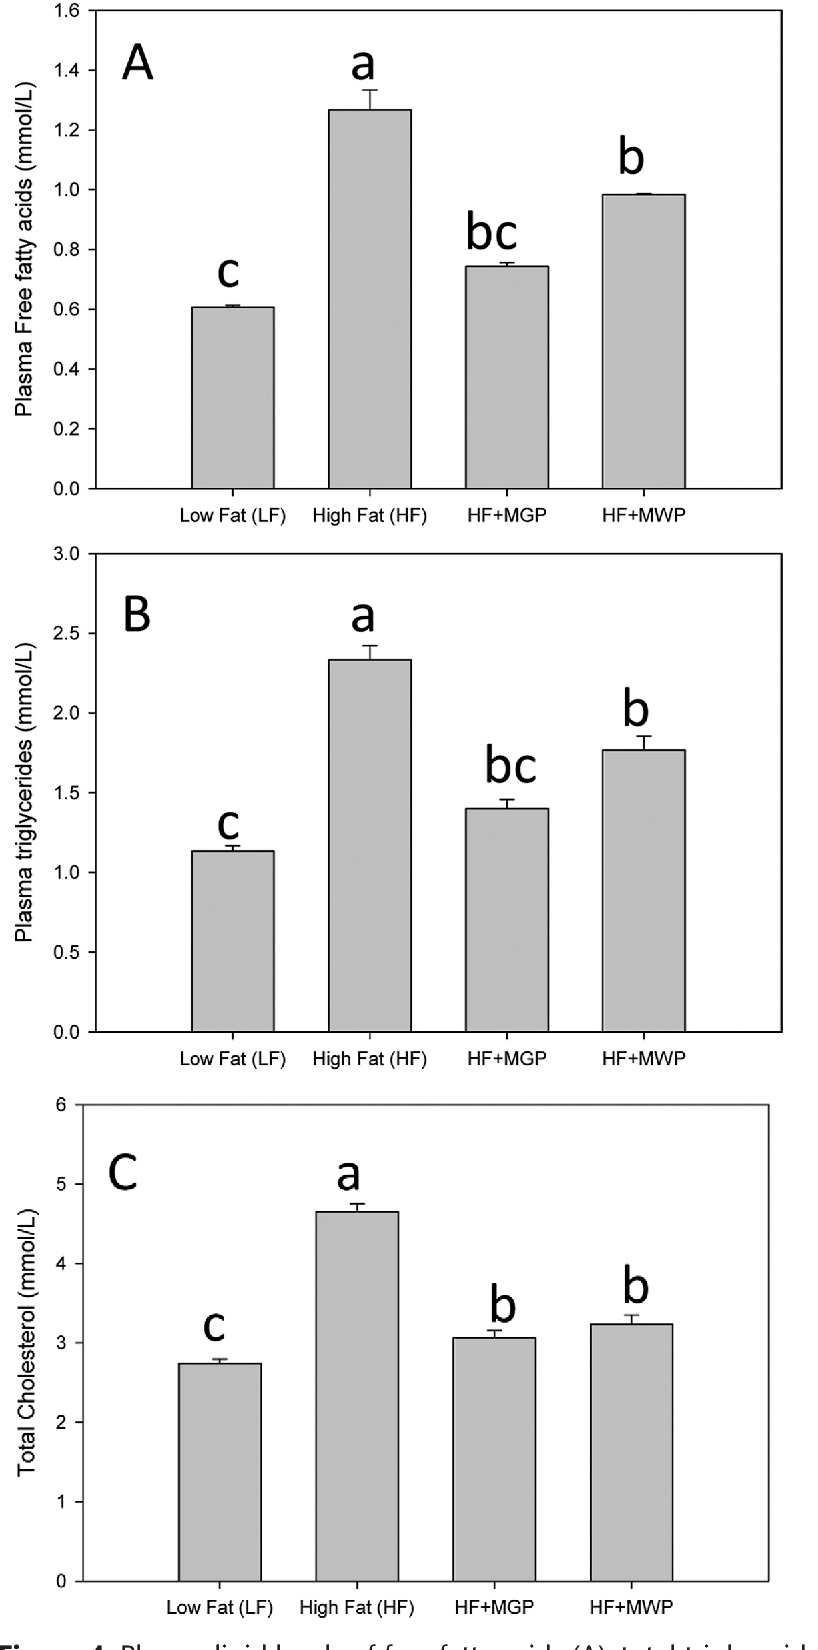 Figure 4. Plasma lipid levels of free fatty acids (A), total triglycerides (B), and total cholesterol (C) in C57BL/6J mice. HF, n = 8; other groups, n = 9.